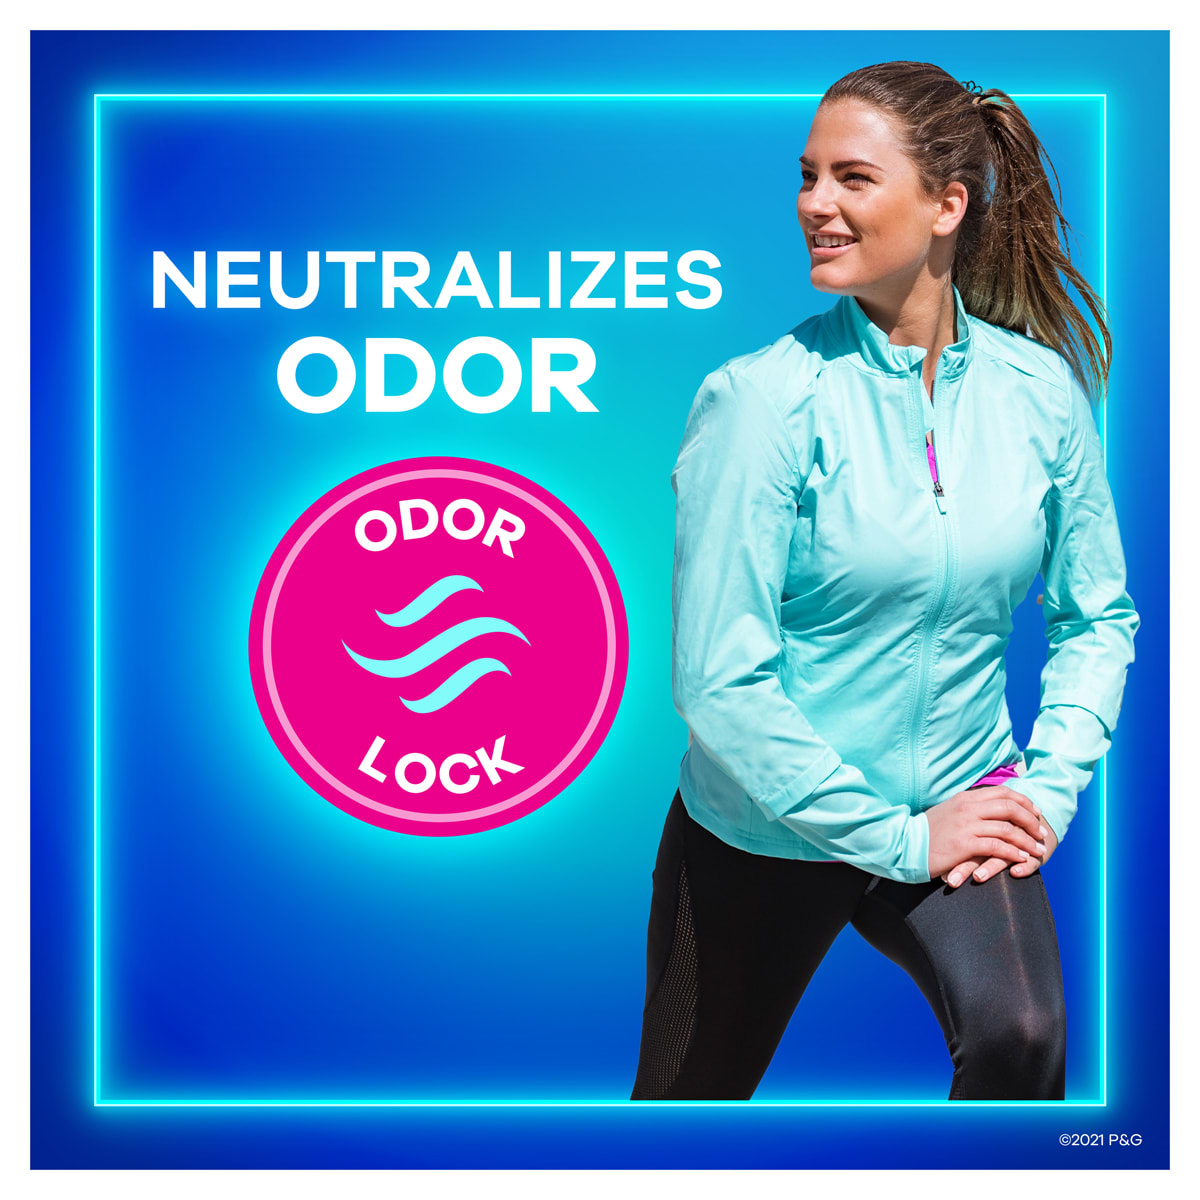 Always Ultra Neutralizes Odor